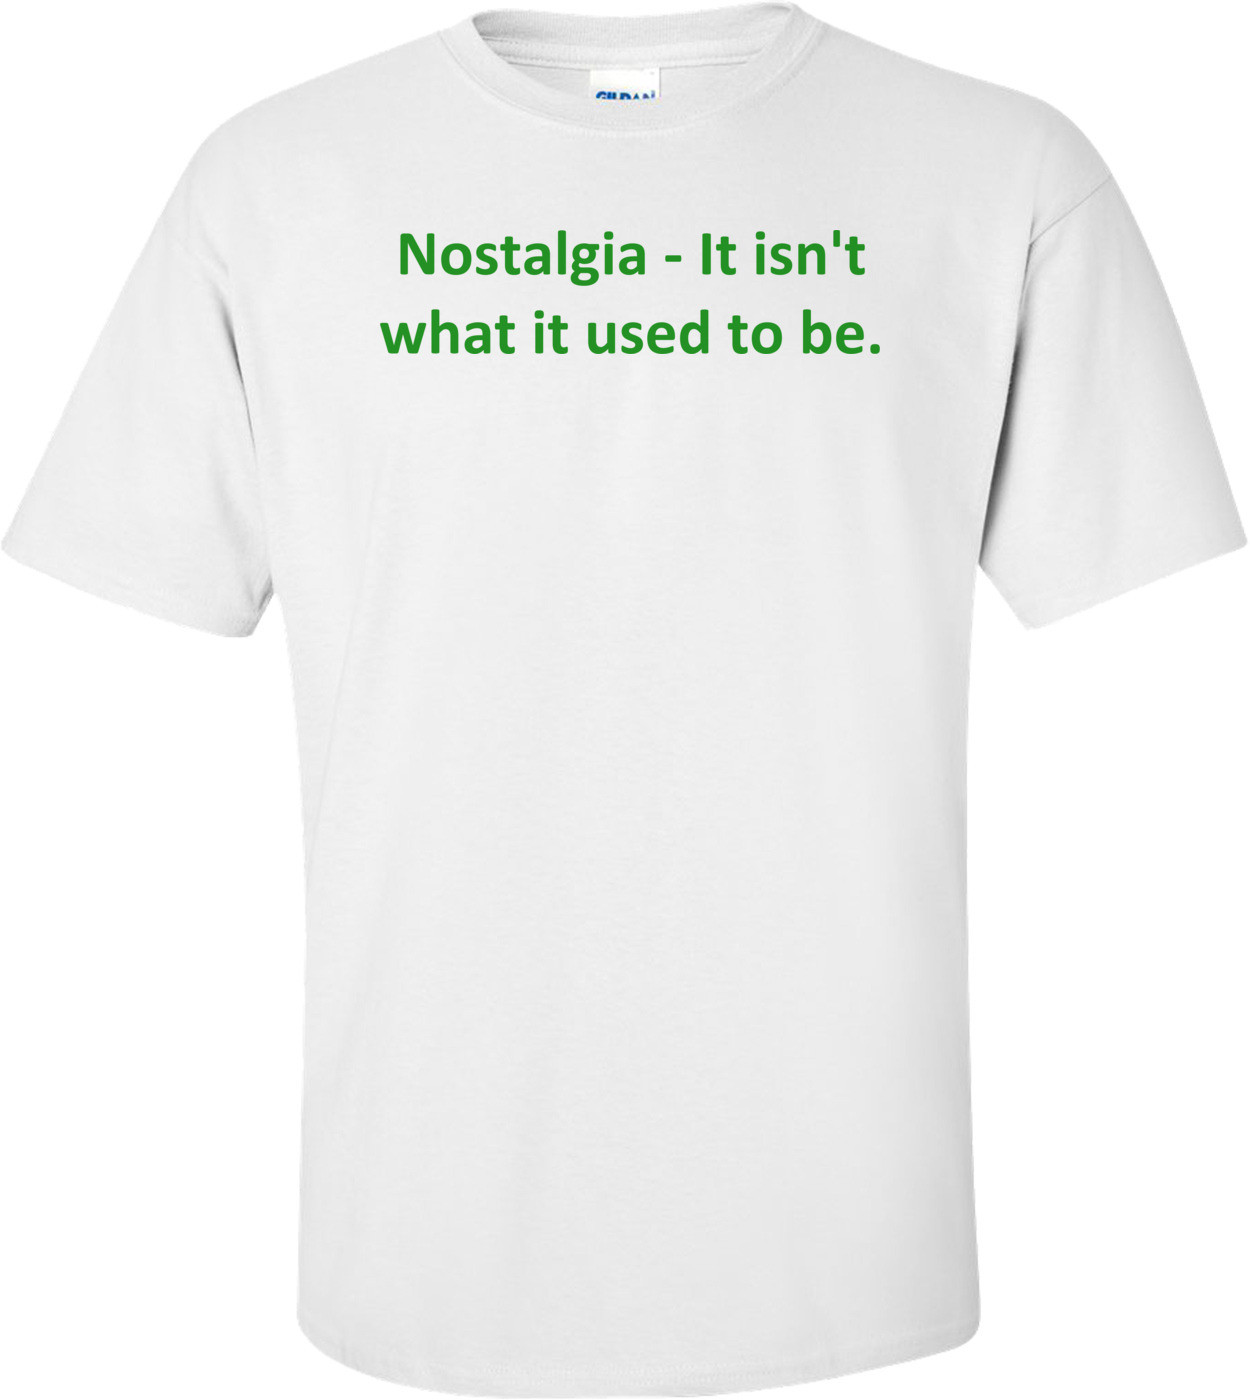 Nostalgia - It isn't what it used to be. Shirt